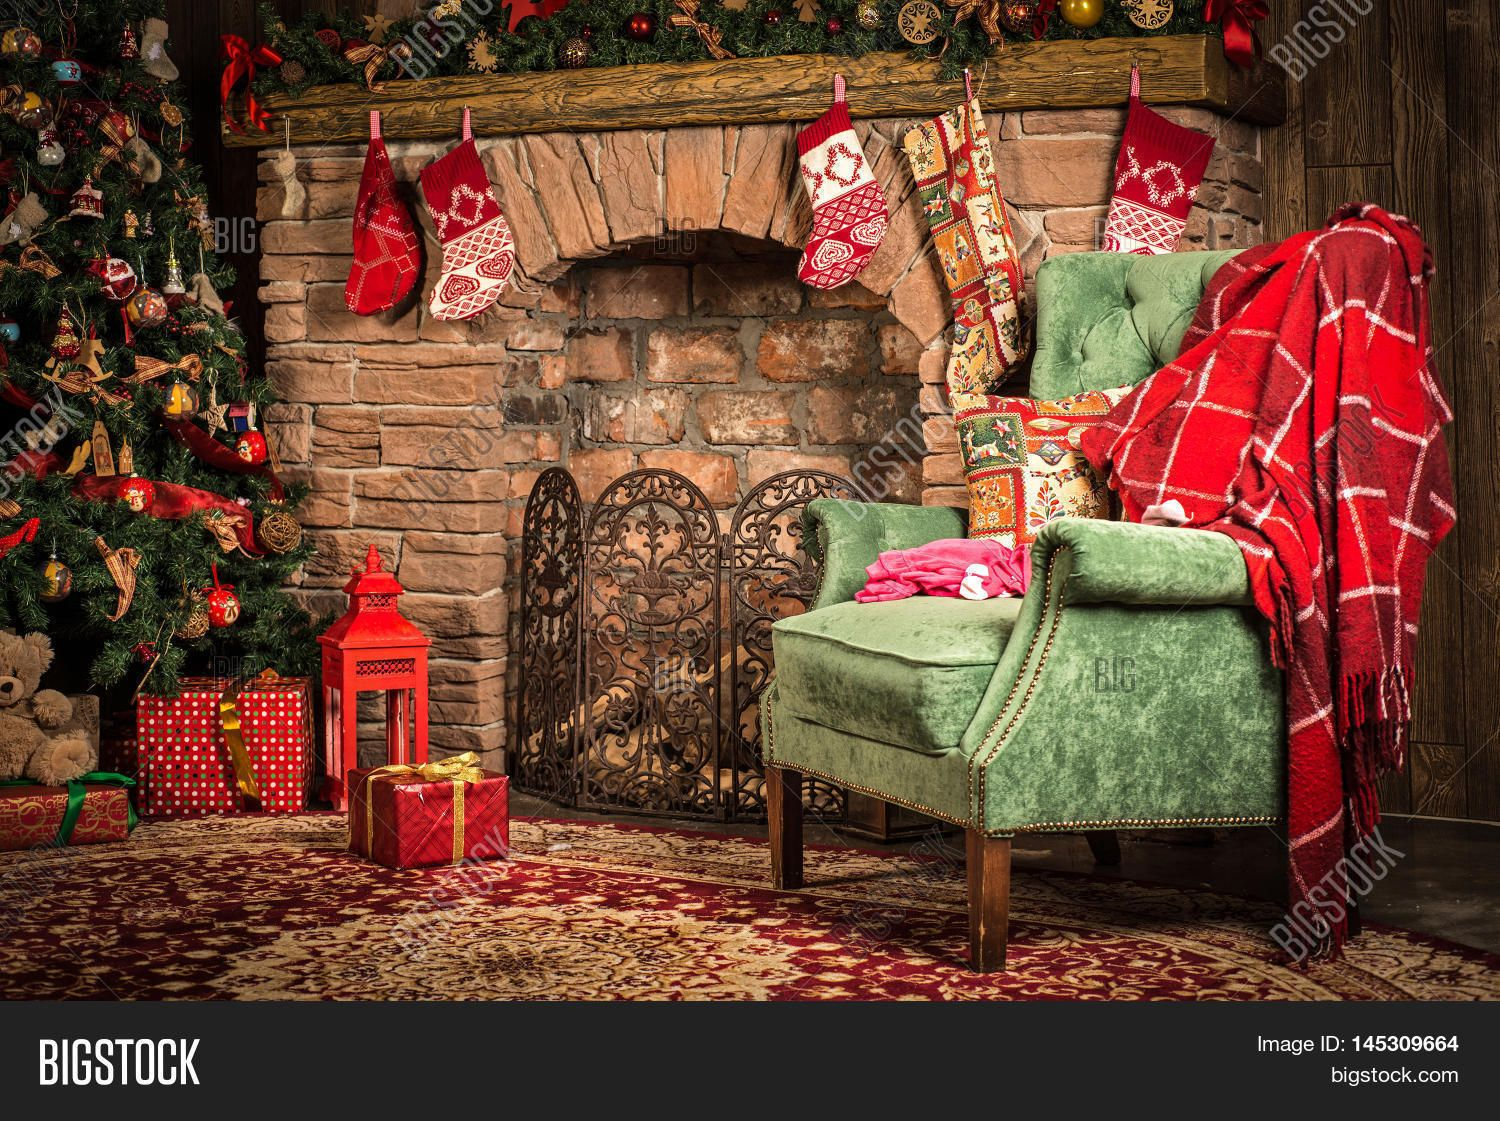 Christmas Decorations Of The Room Fireplace Chair Christmas Tree And Gifts Christmas Tree With Gifts Fireplace Christmas Decorations